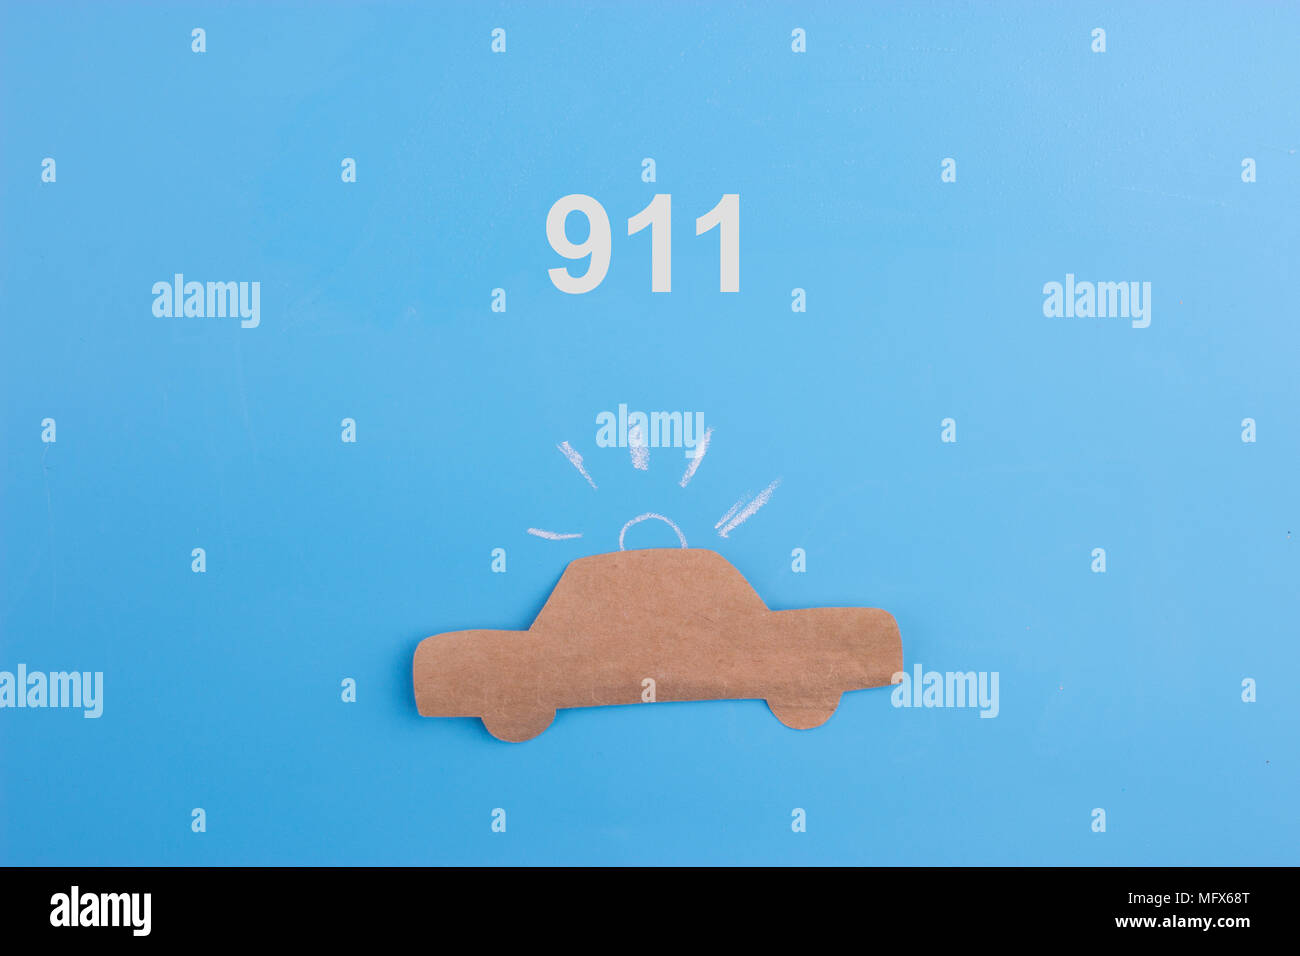 emergency car concept. paper car on blue background - Stock Image